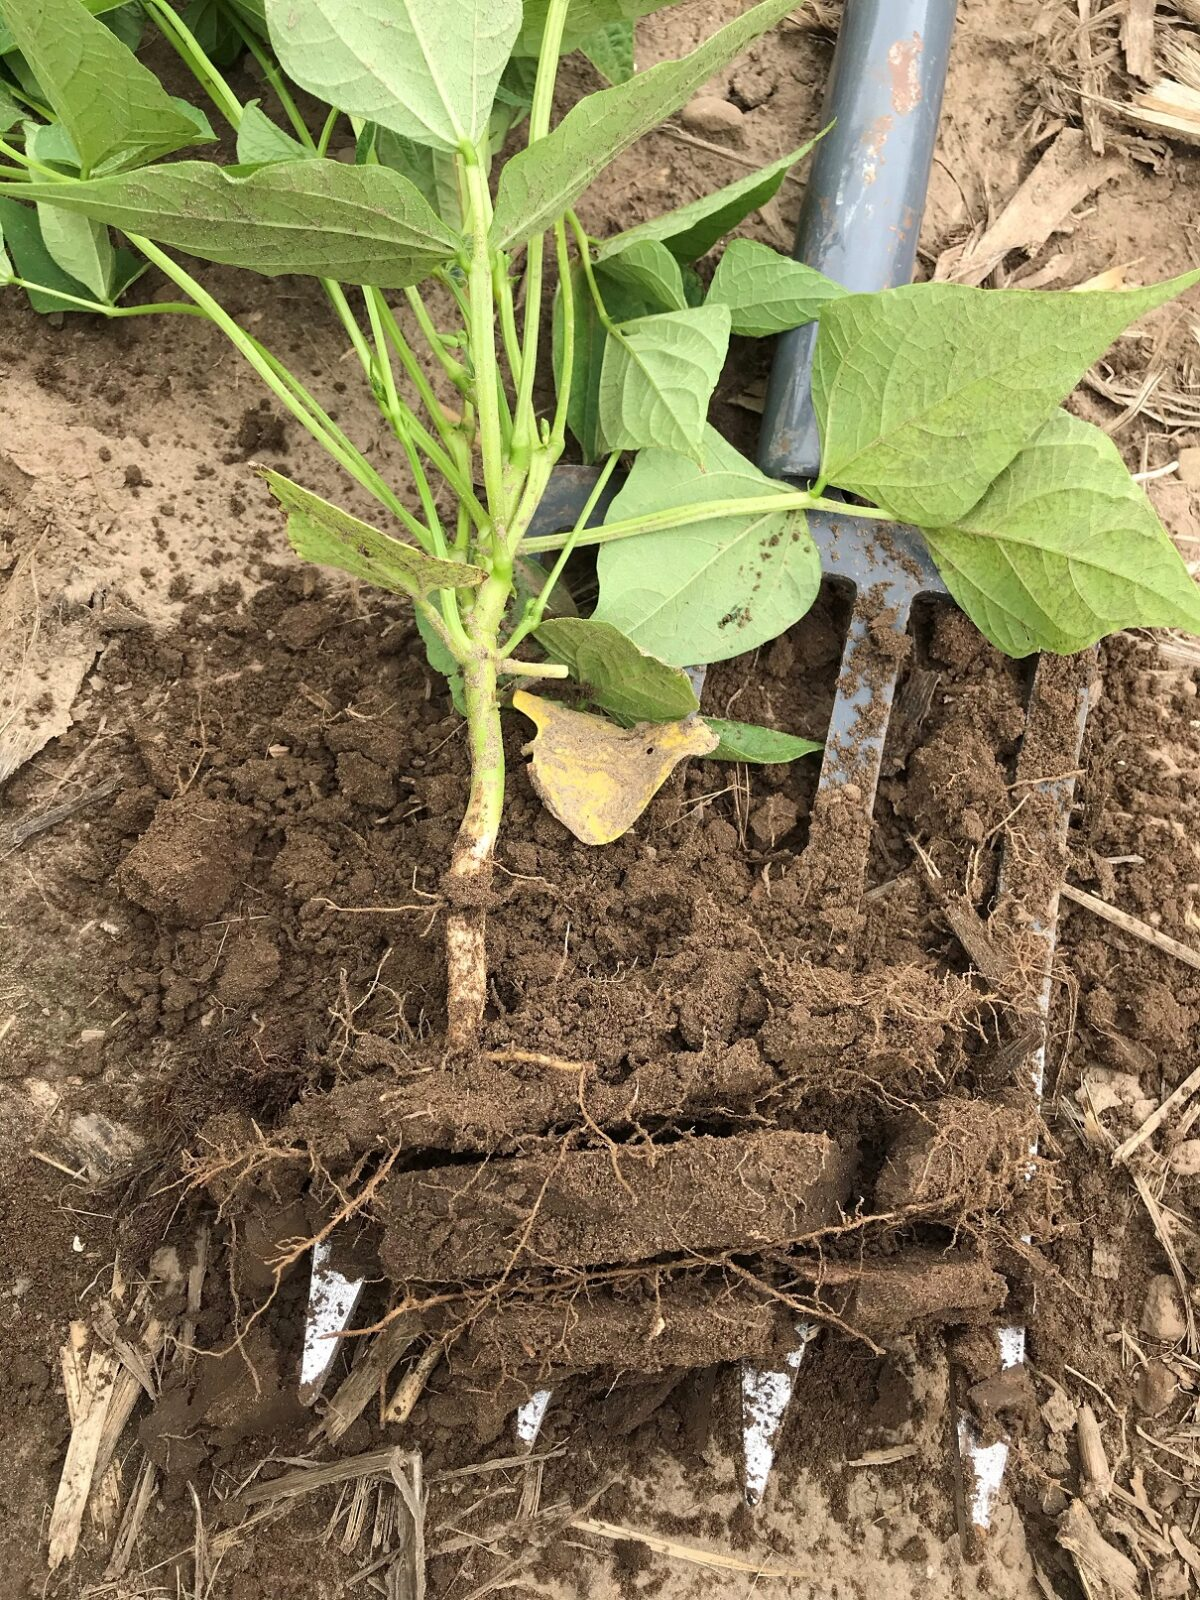 Pulled plant and underlying soil with three layers of compact soil